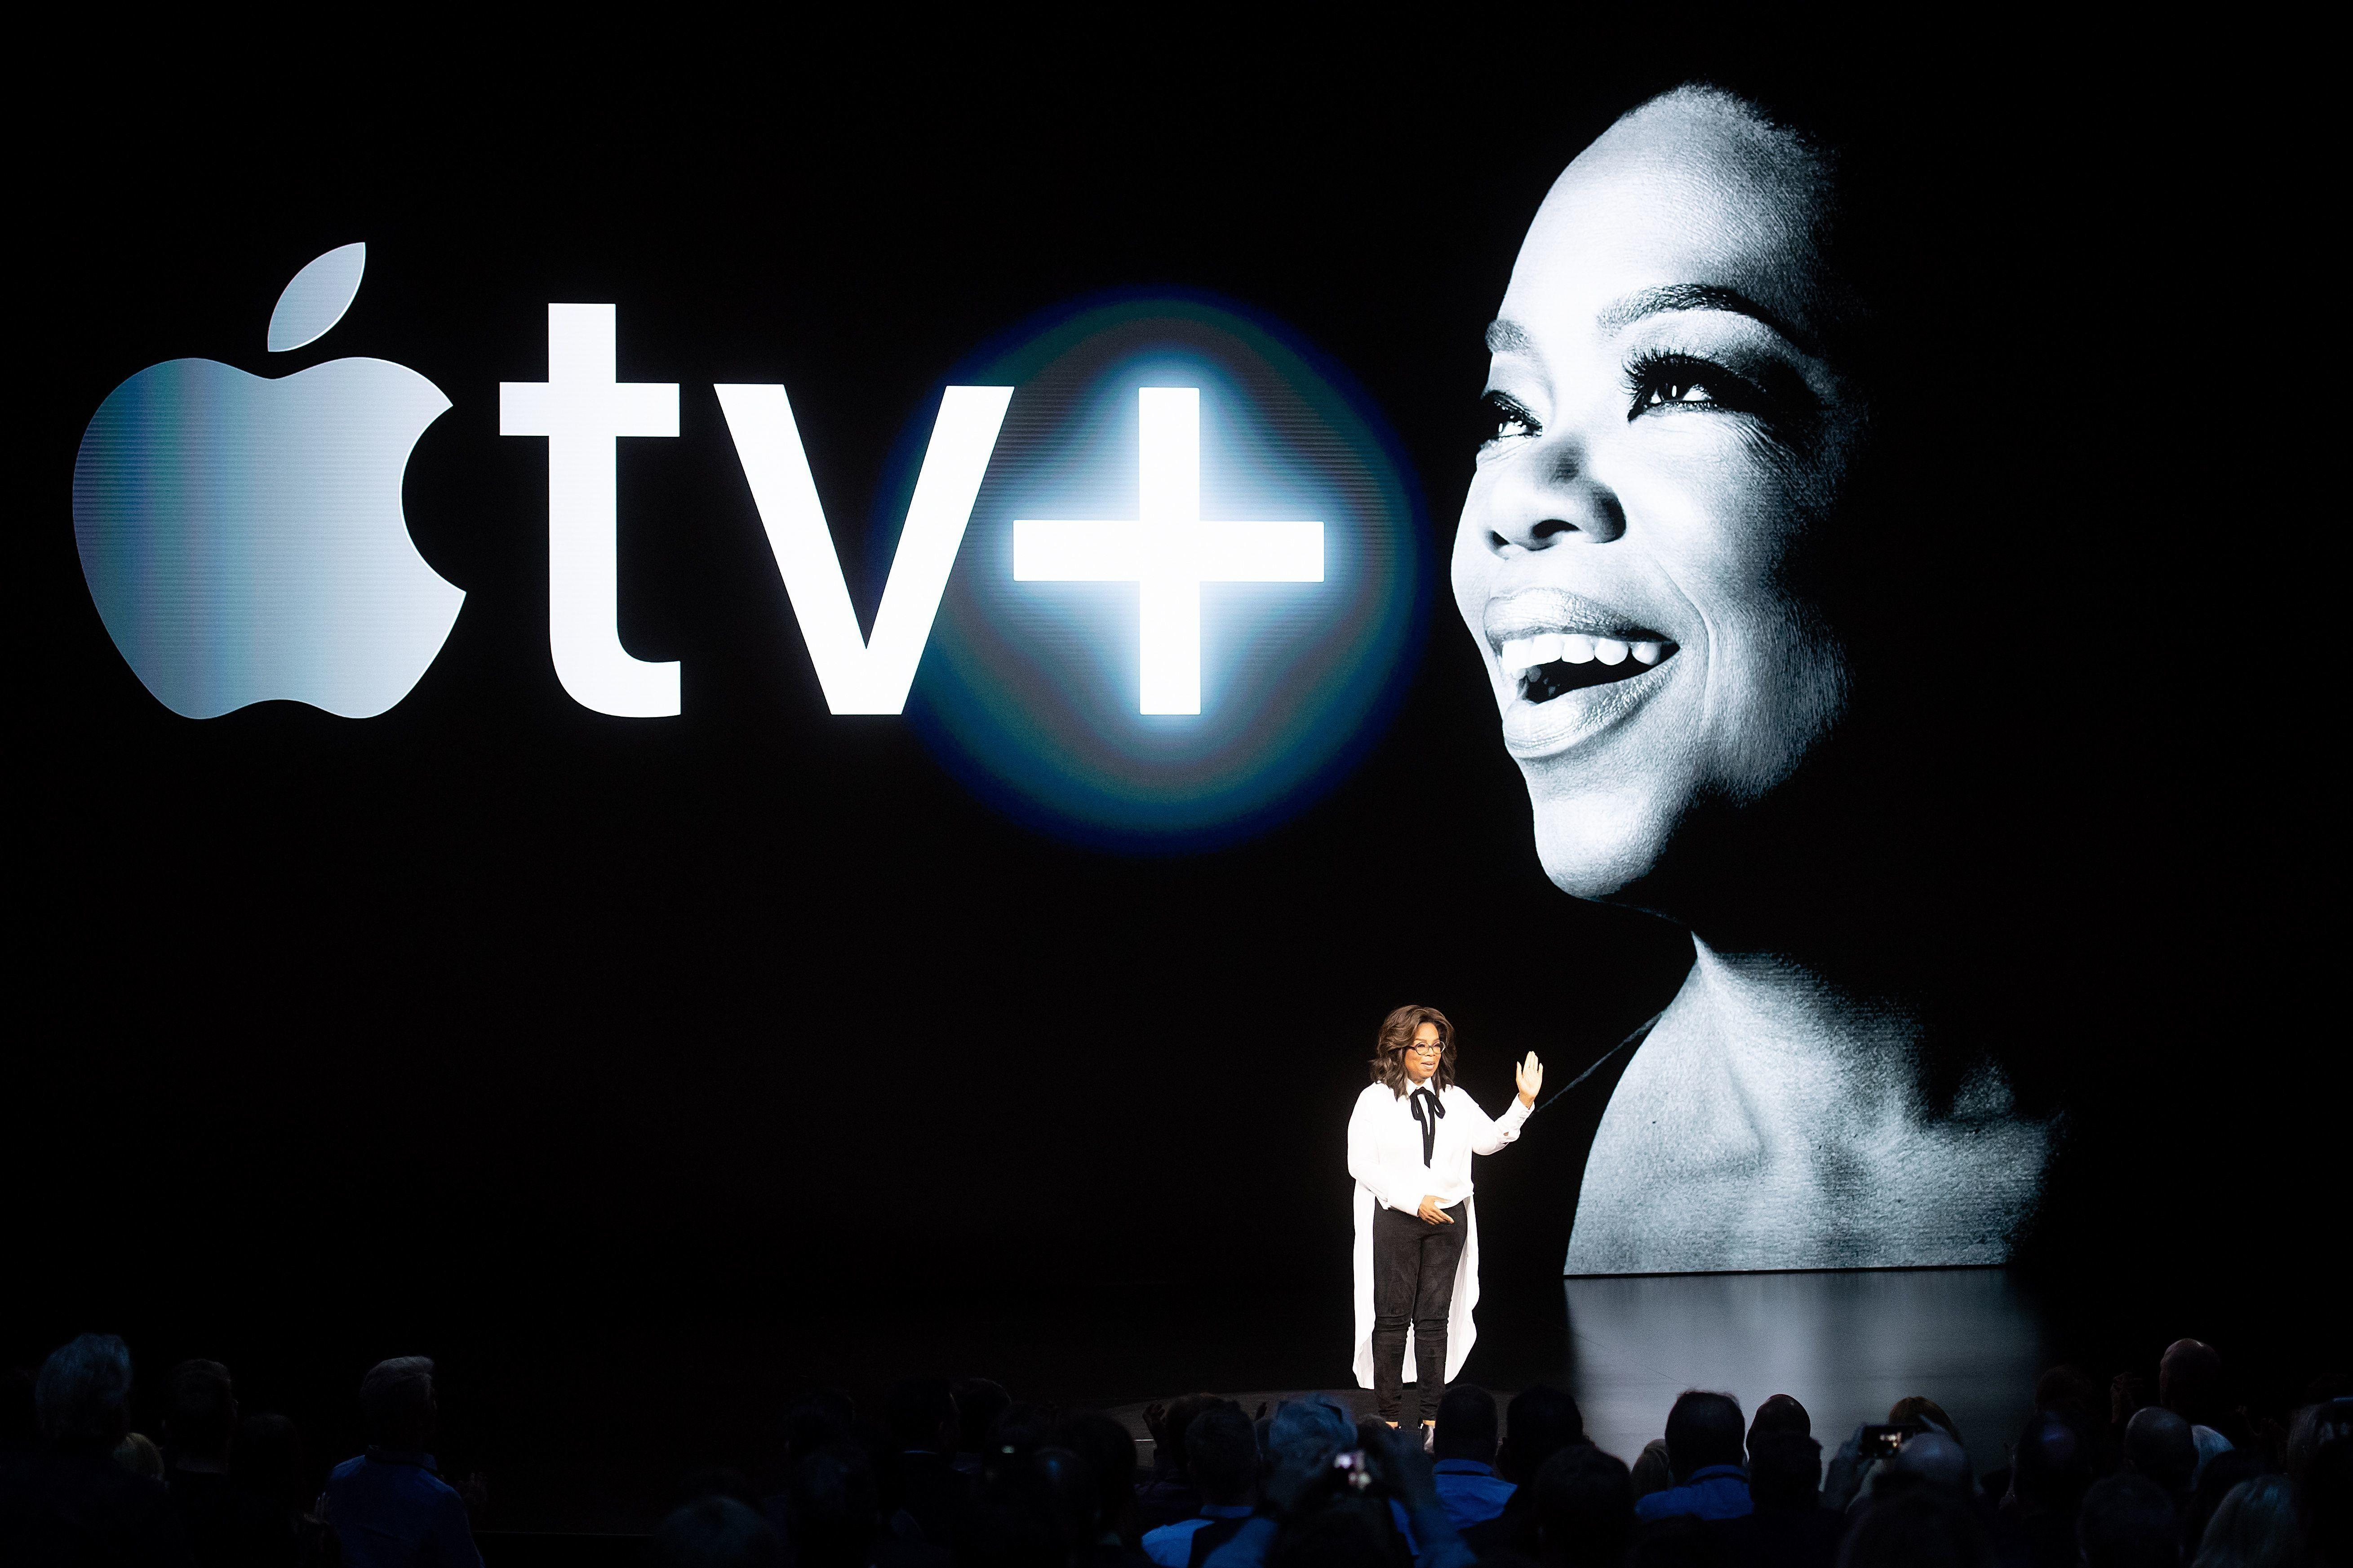 How Apple TV Plus compares to Netflix, Amazon Prime Video, and Hulu